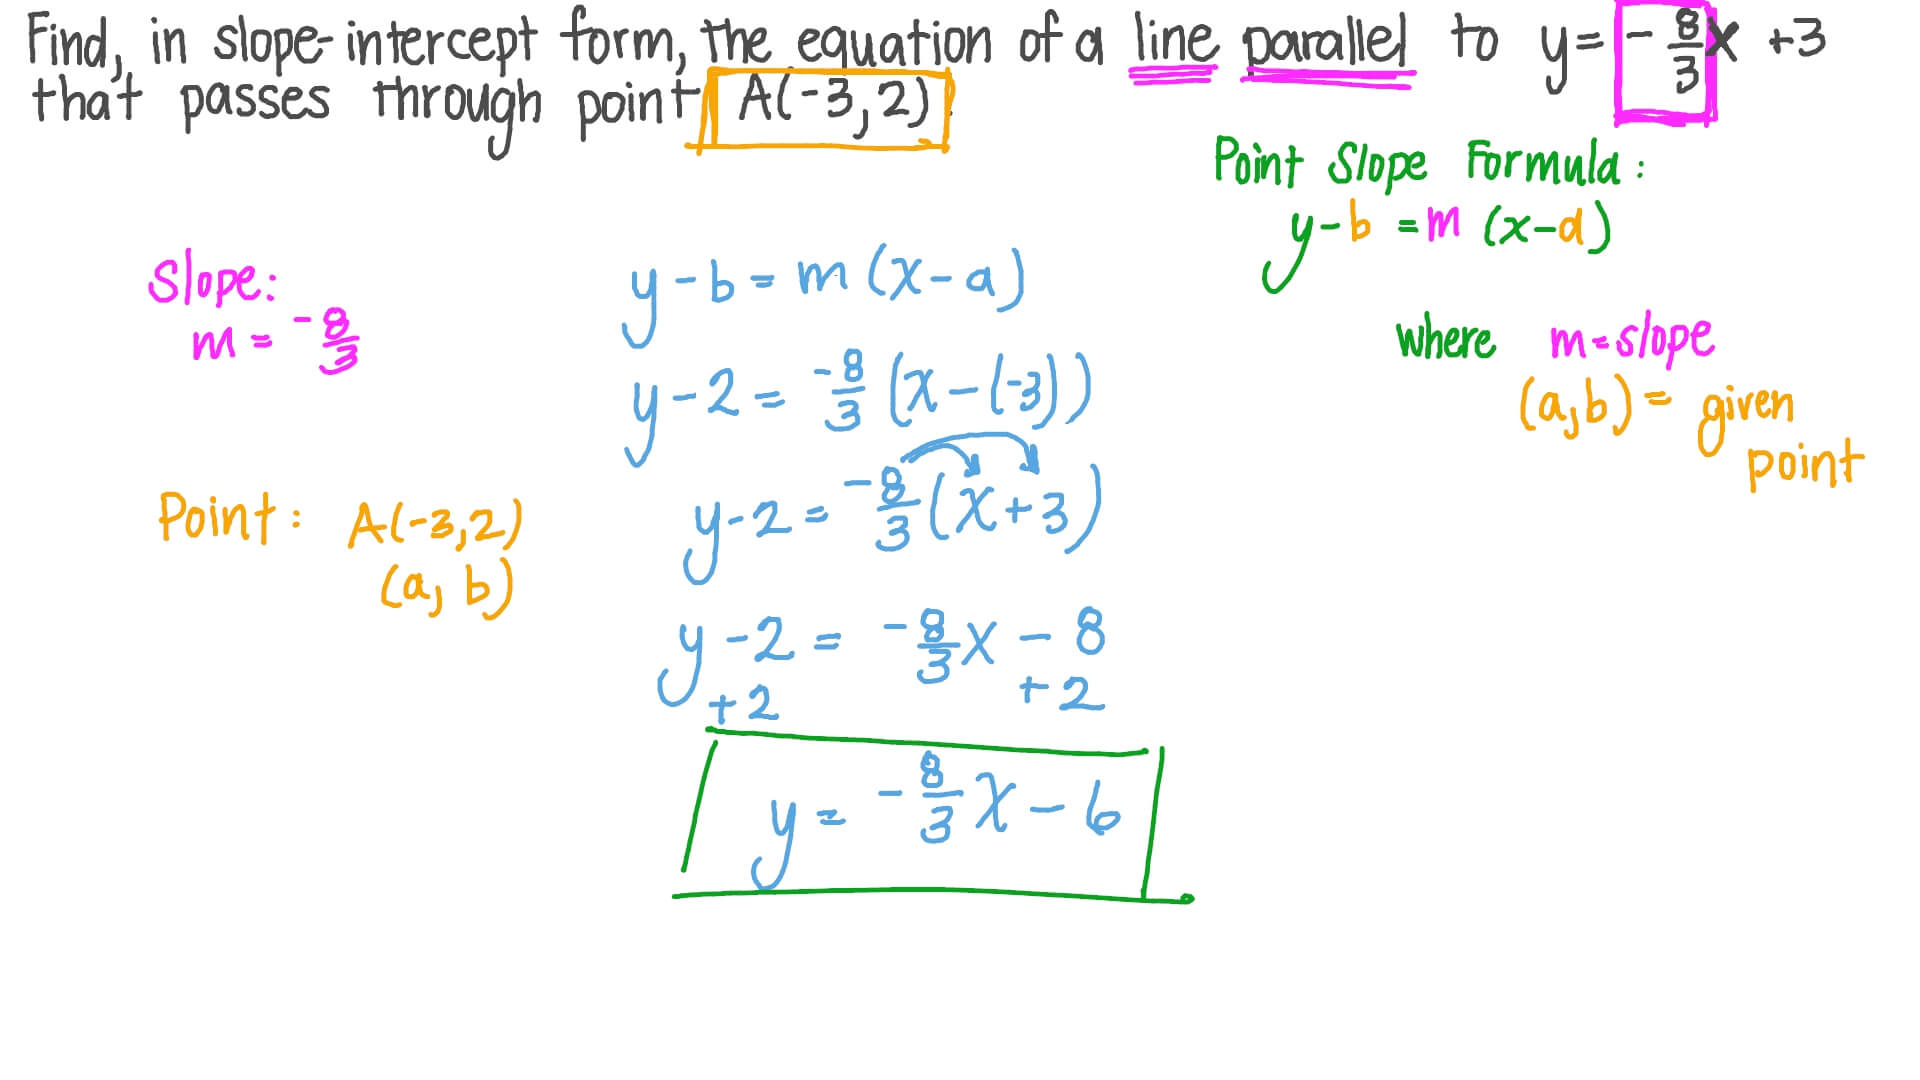 slope intercept form  Finding in Slope-Intercept Form the Equation of Parallel Lines